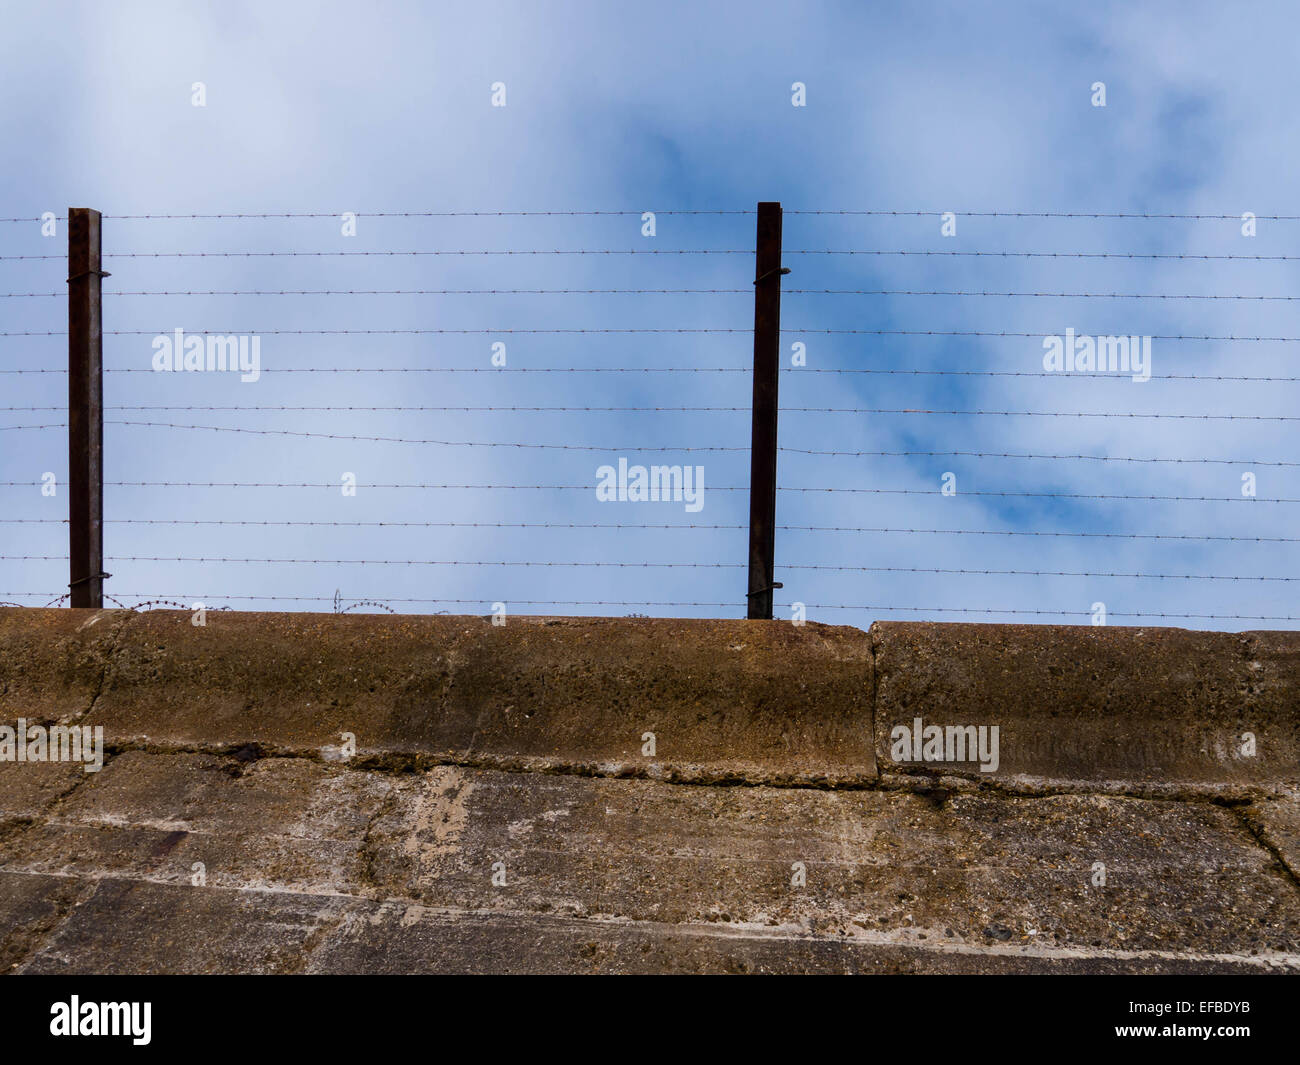 A barbed wire fence on top of a concrete wall - Stock Image